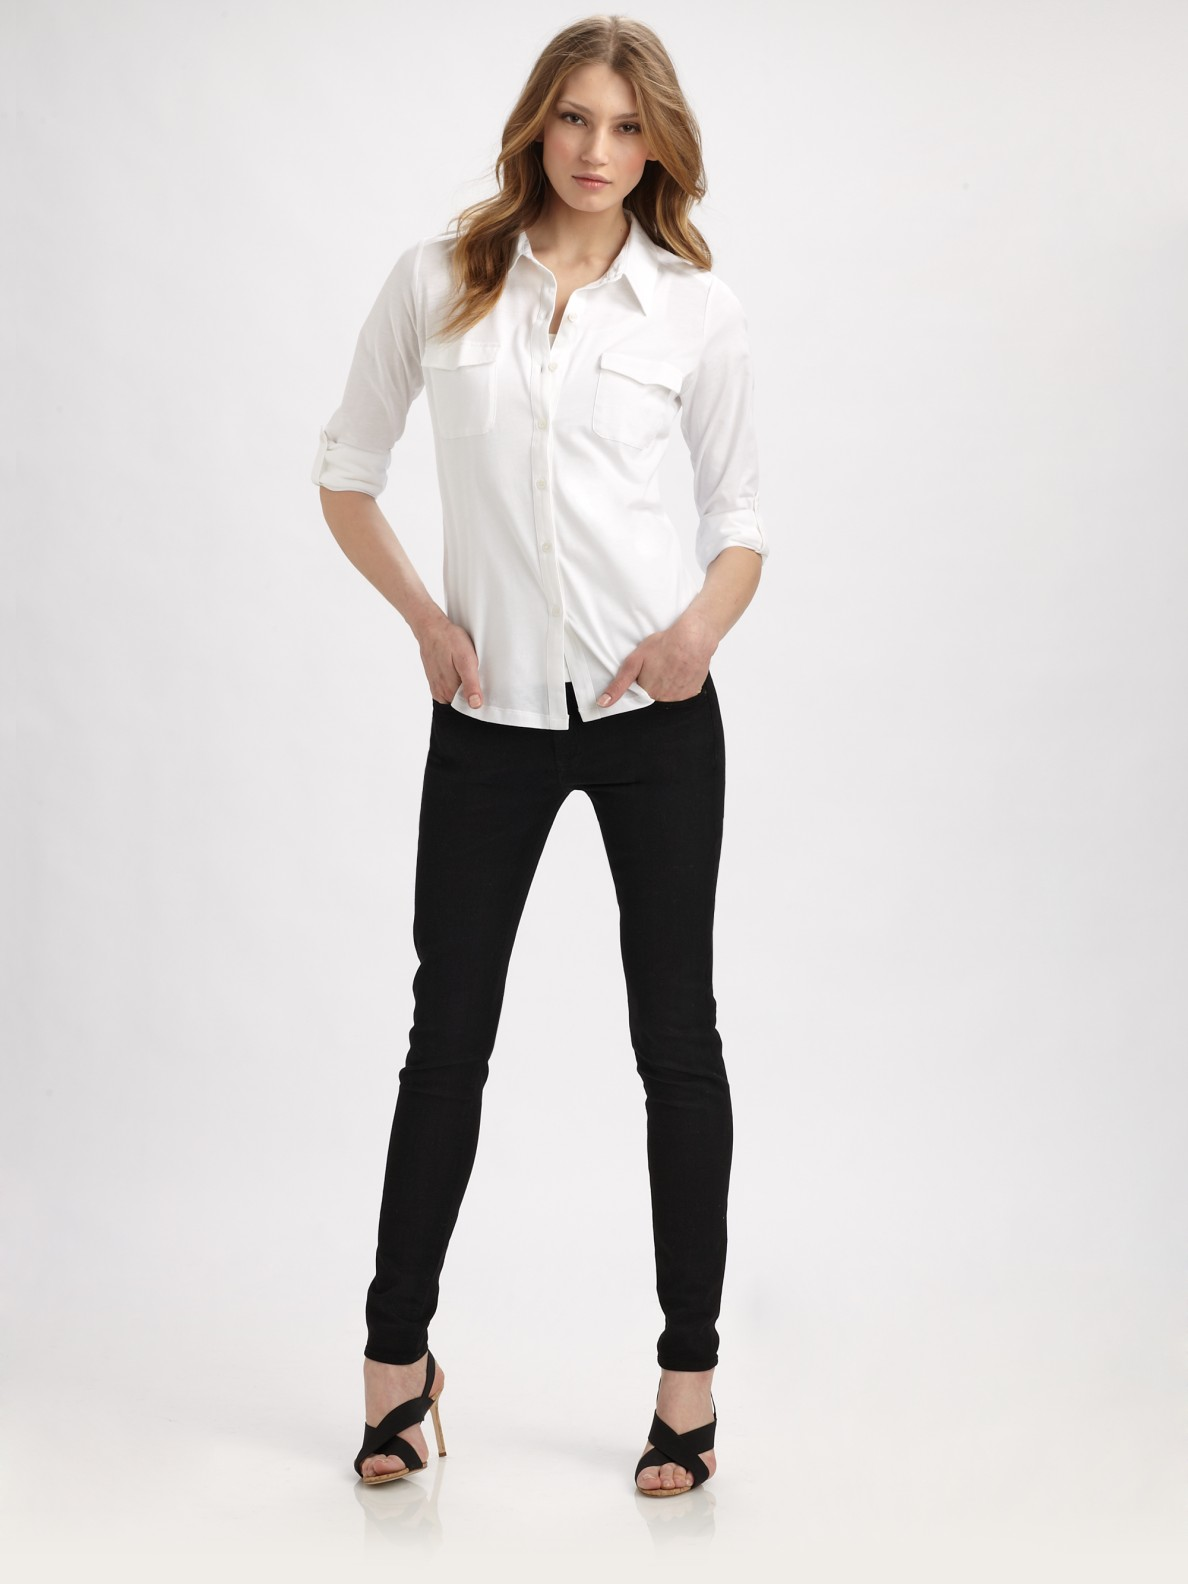 Eileen fisher Organic Cotton Button-down Shirt in White | Lyst